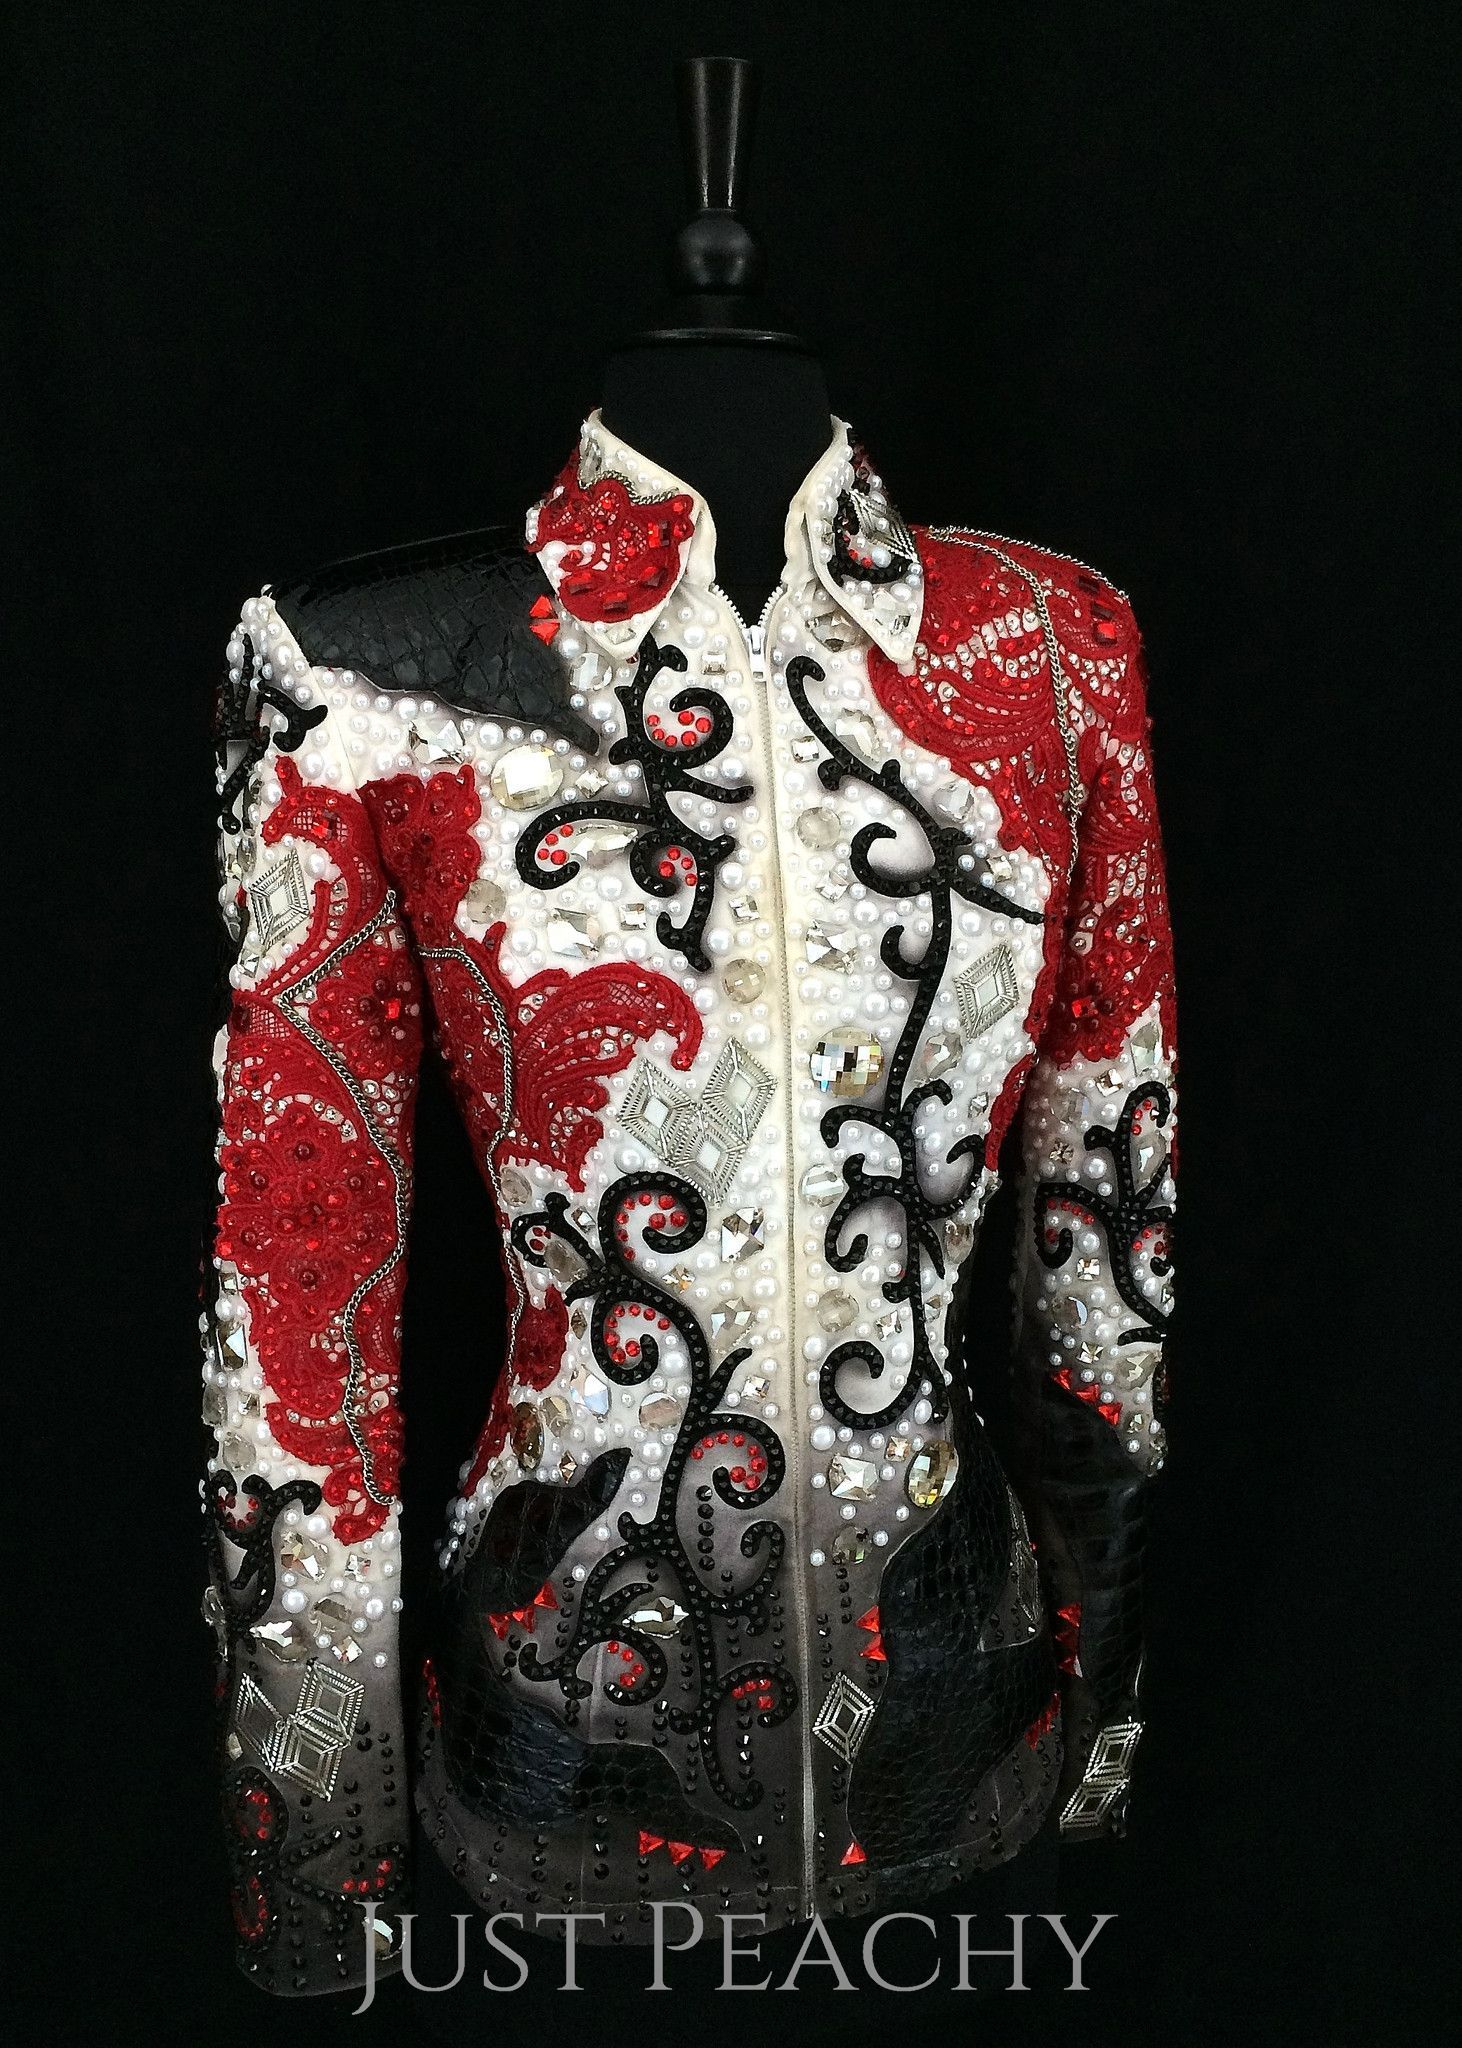 "Gently used, one-of-a-kind showmanship jacket by Lindsey James Show Clothing Approx Ladies XS with slight stretch Item # 6771 Bust: 35"" Waist: 28"" Hip: 36"" Shoulder Width: 16"" Sleeve Length: 24.5"" Bac"